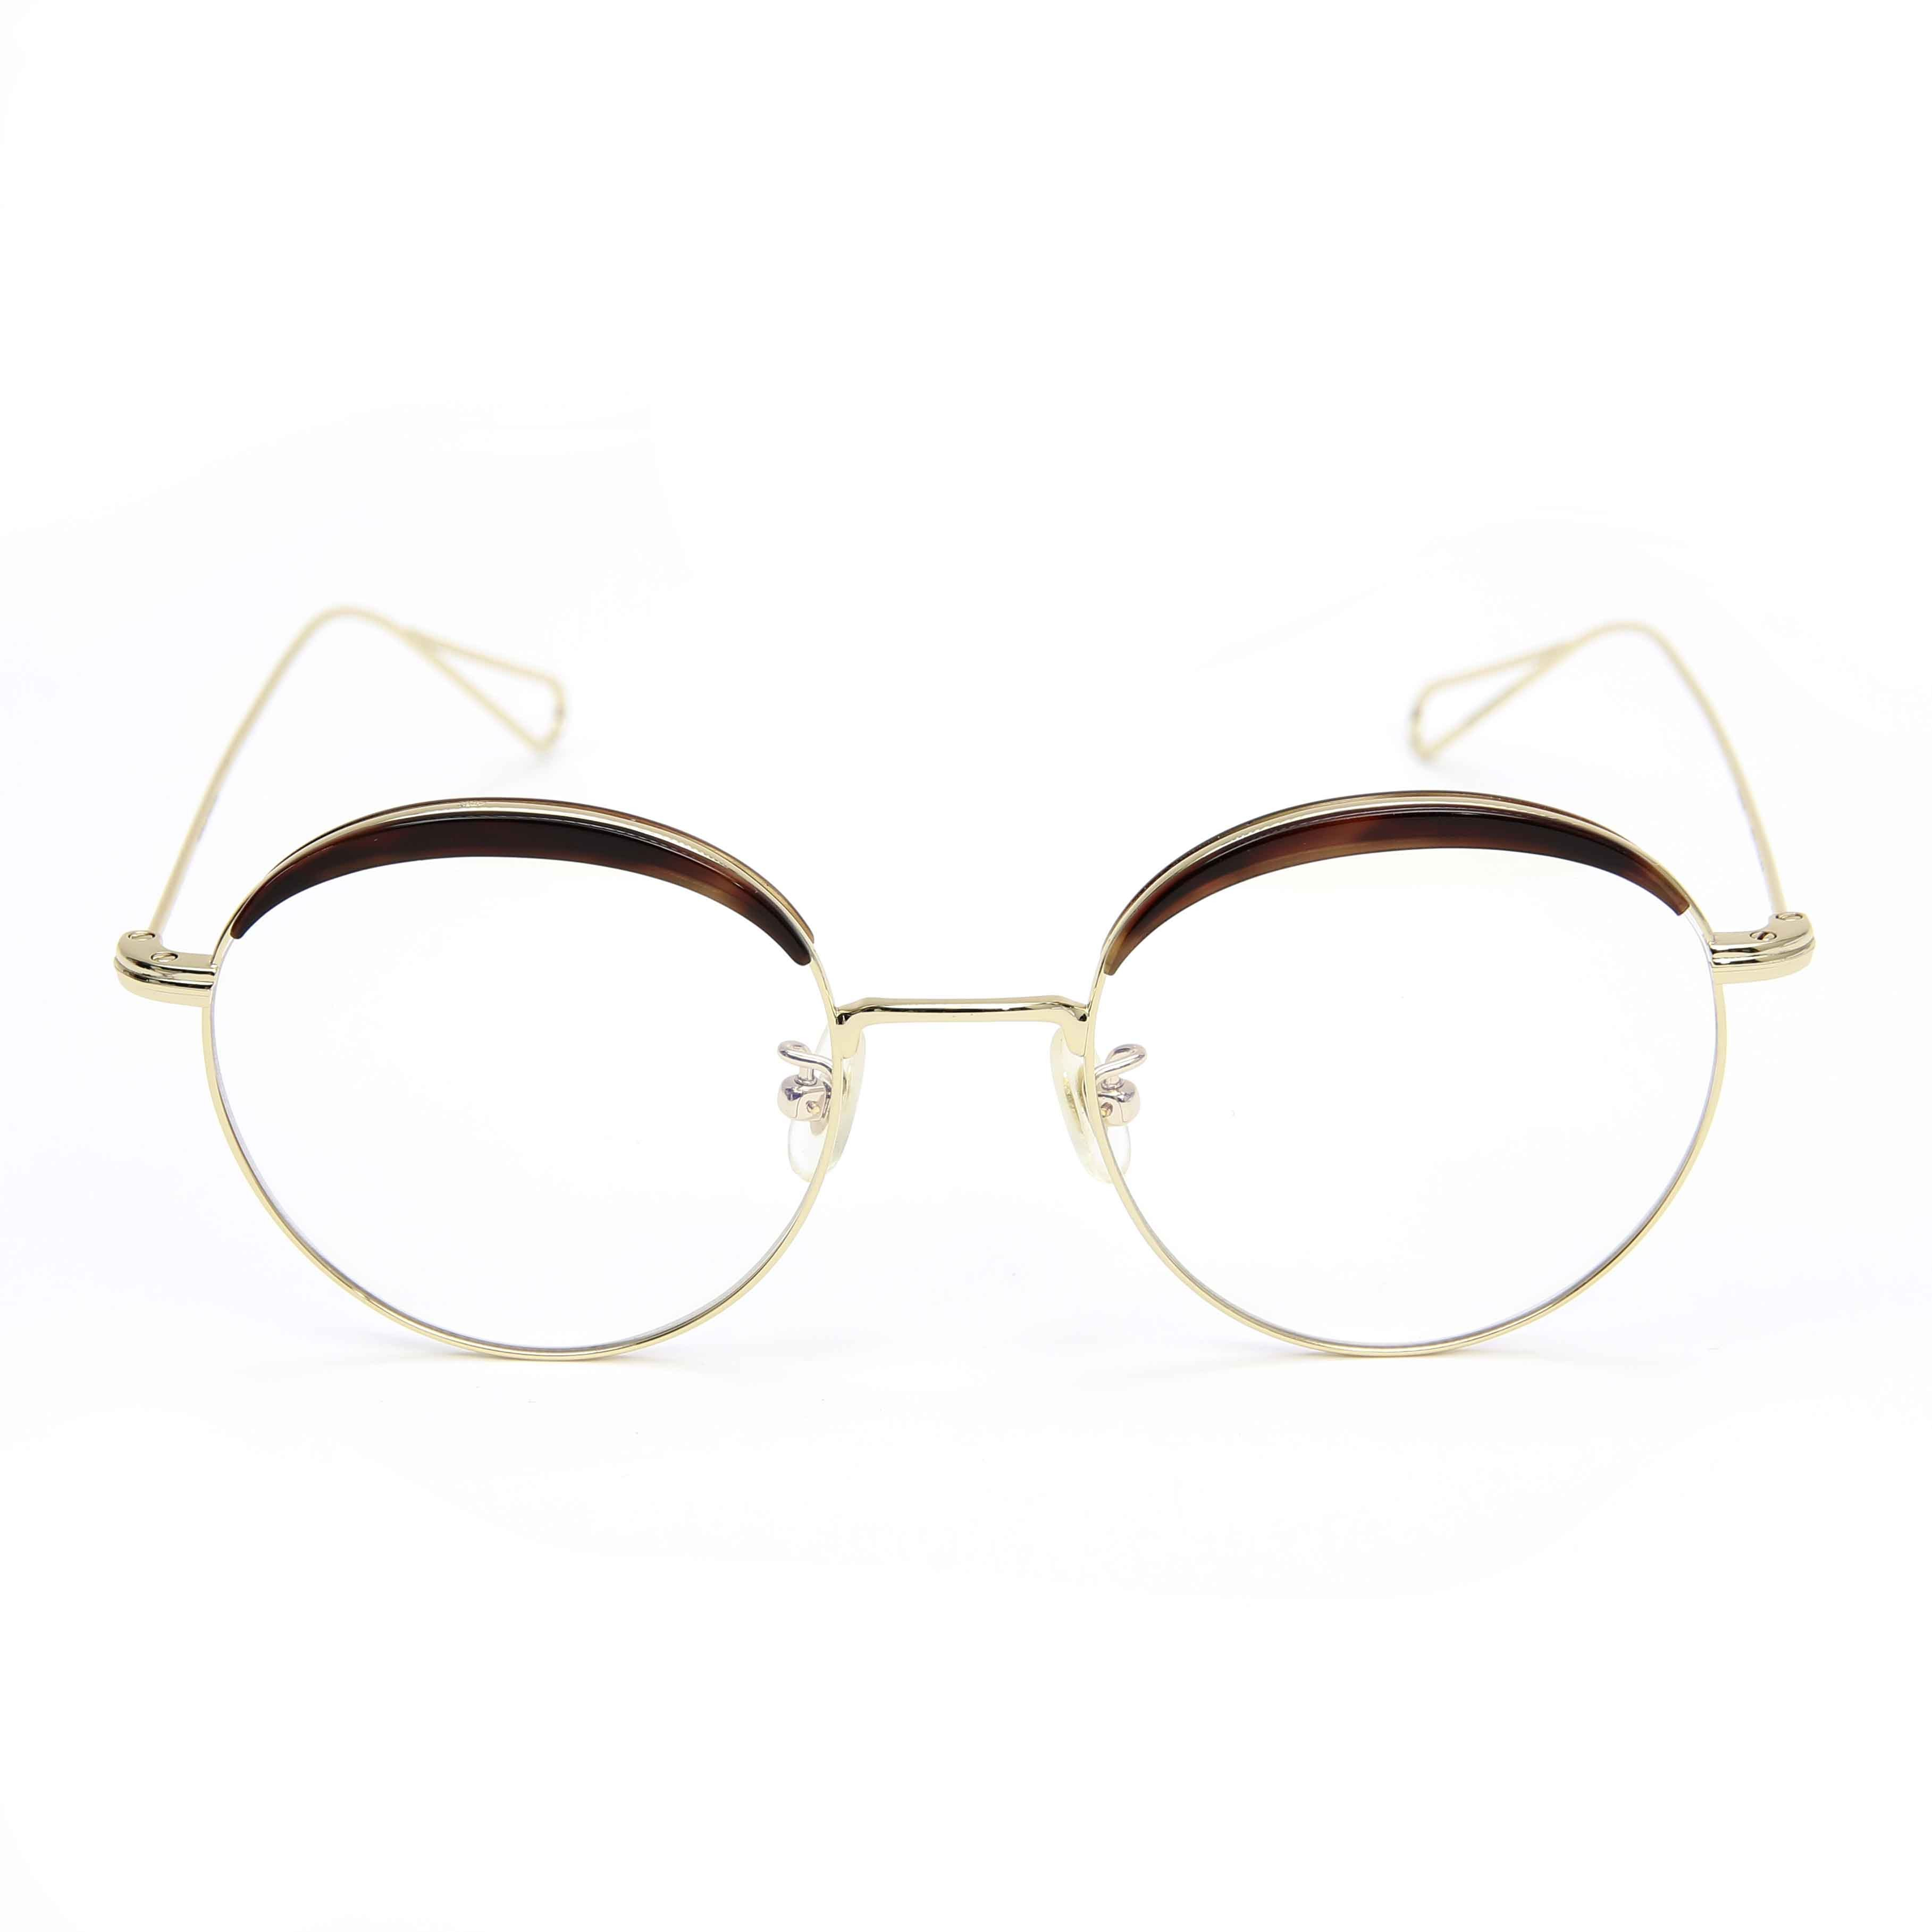 7960bed6a41 Stephane Christian Metal Aviator Optical Glasses - SDRE